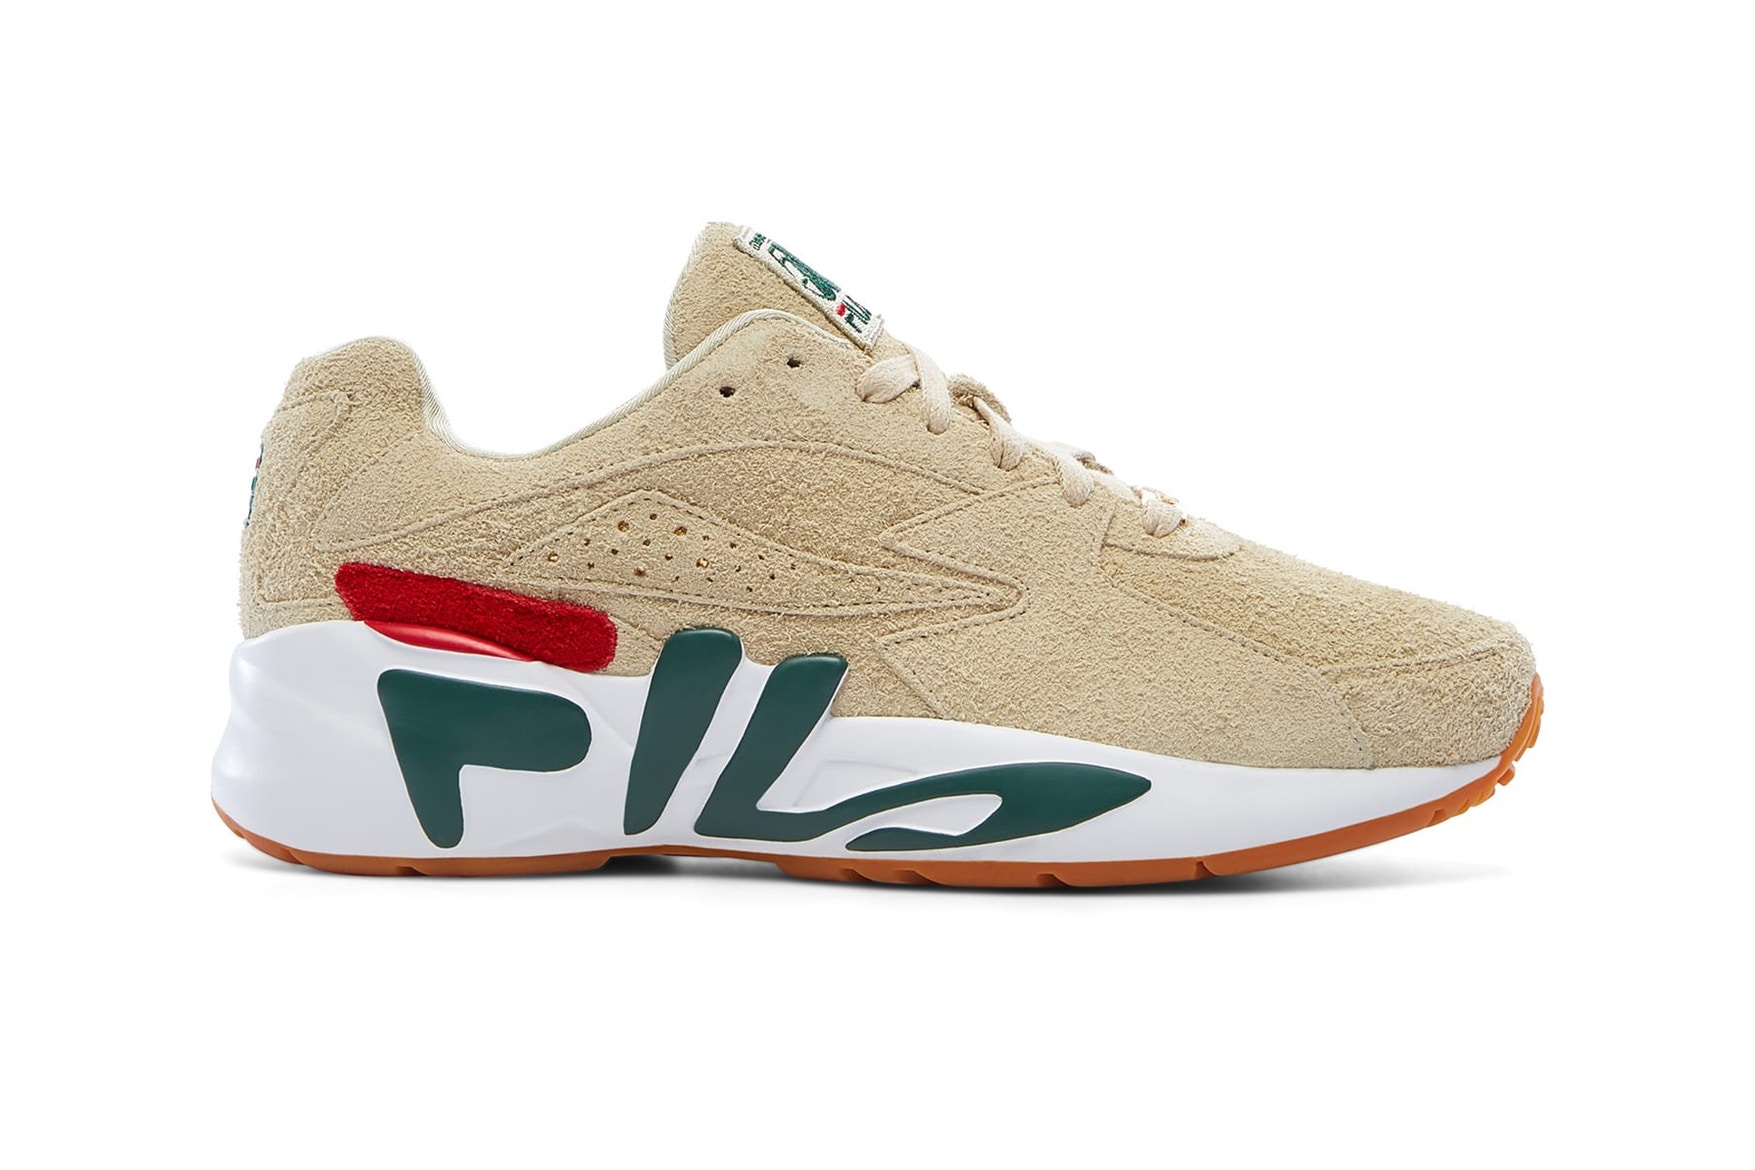 fila revives the classic mindblower with over  limited edition collaborations